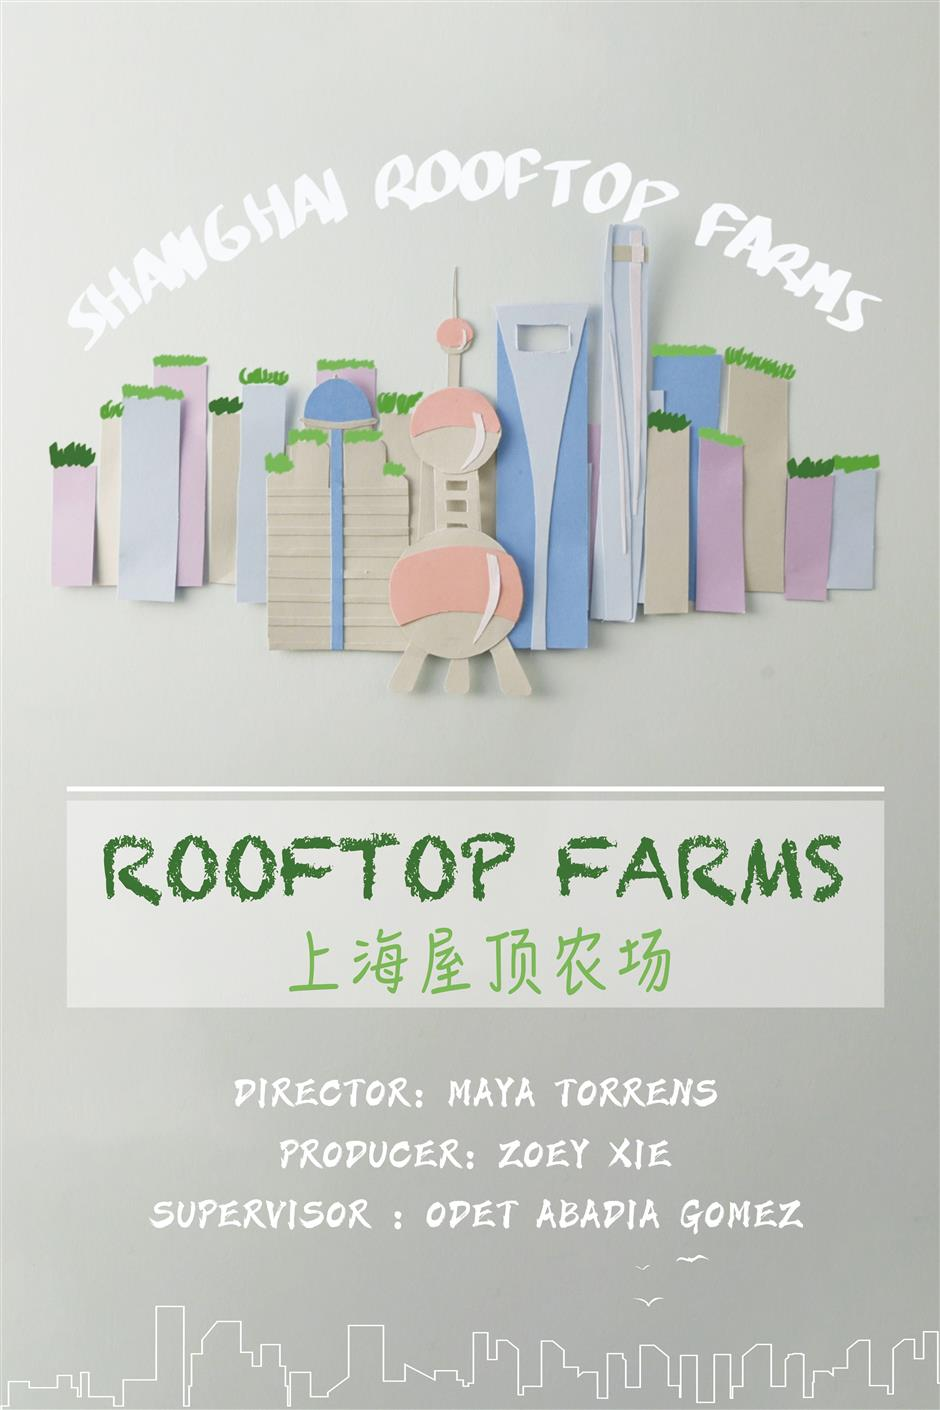 Looking China series: Shanghai rooftop farms